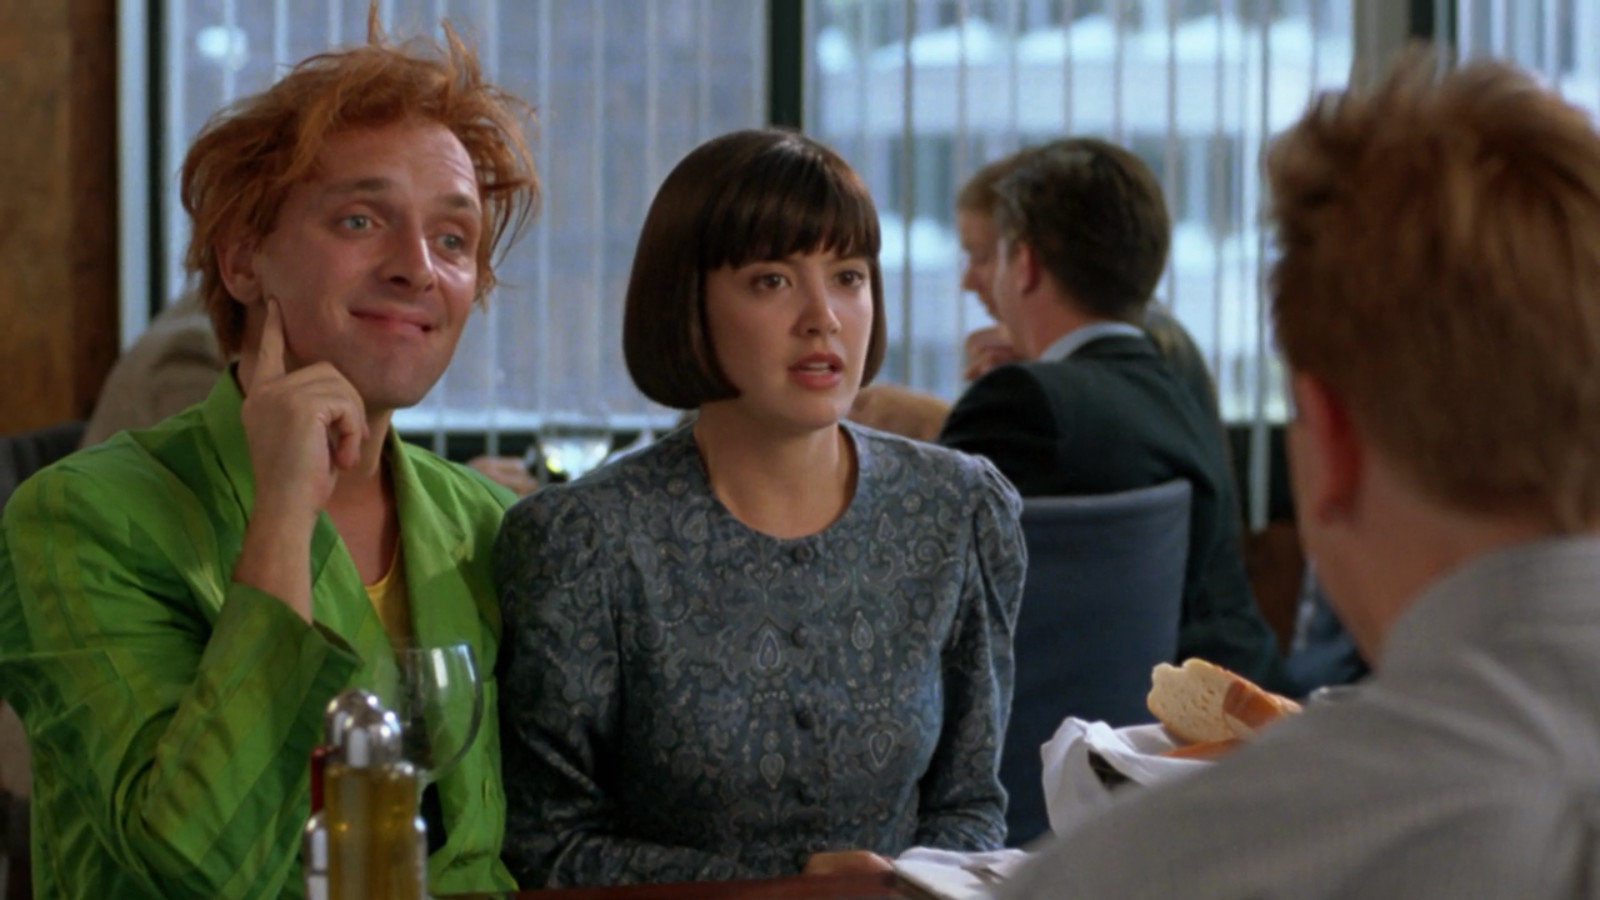 Download hd 1600x900 Drop Dead Fred PC wallpaper ID:164500 for free